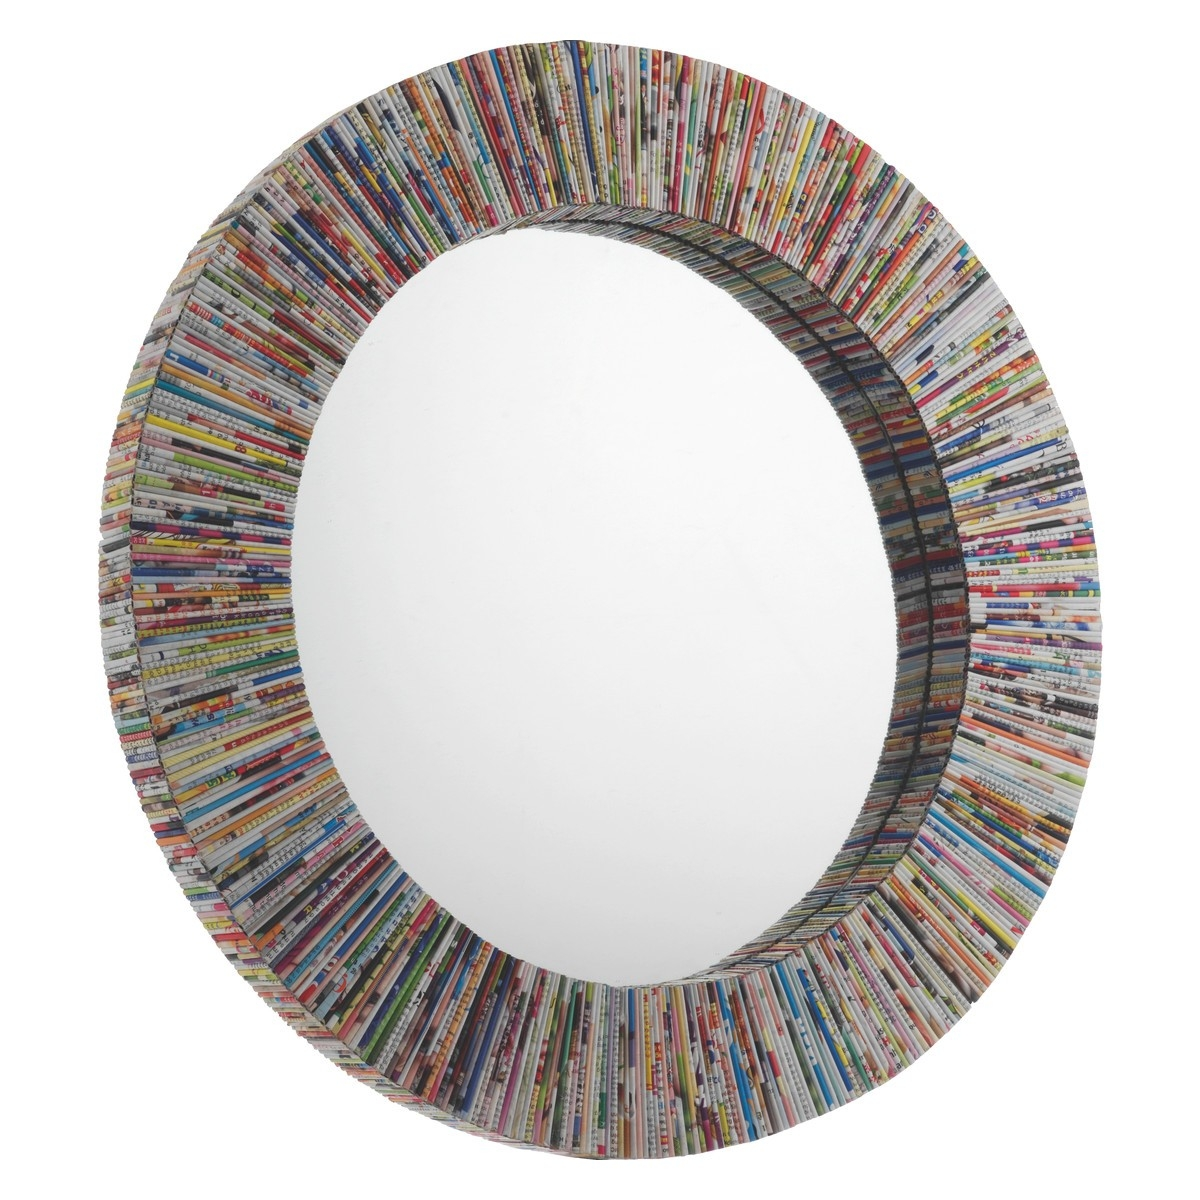 Mirrors Full Length Large Round Wall Mirrors Habitat Intended For Oak Mirrors For Sale (Image 11 of 15)